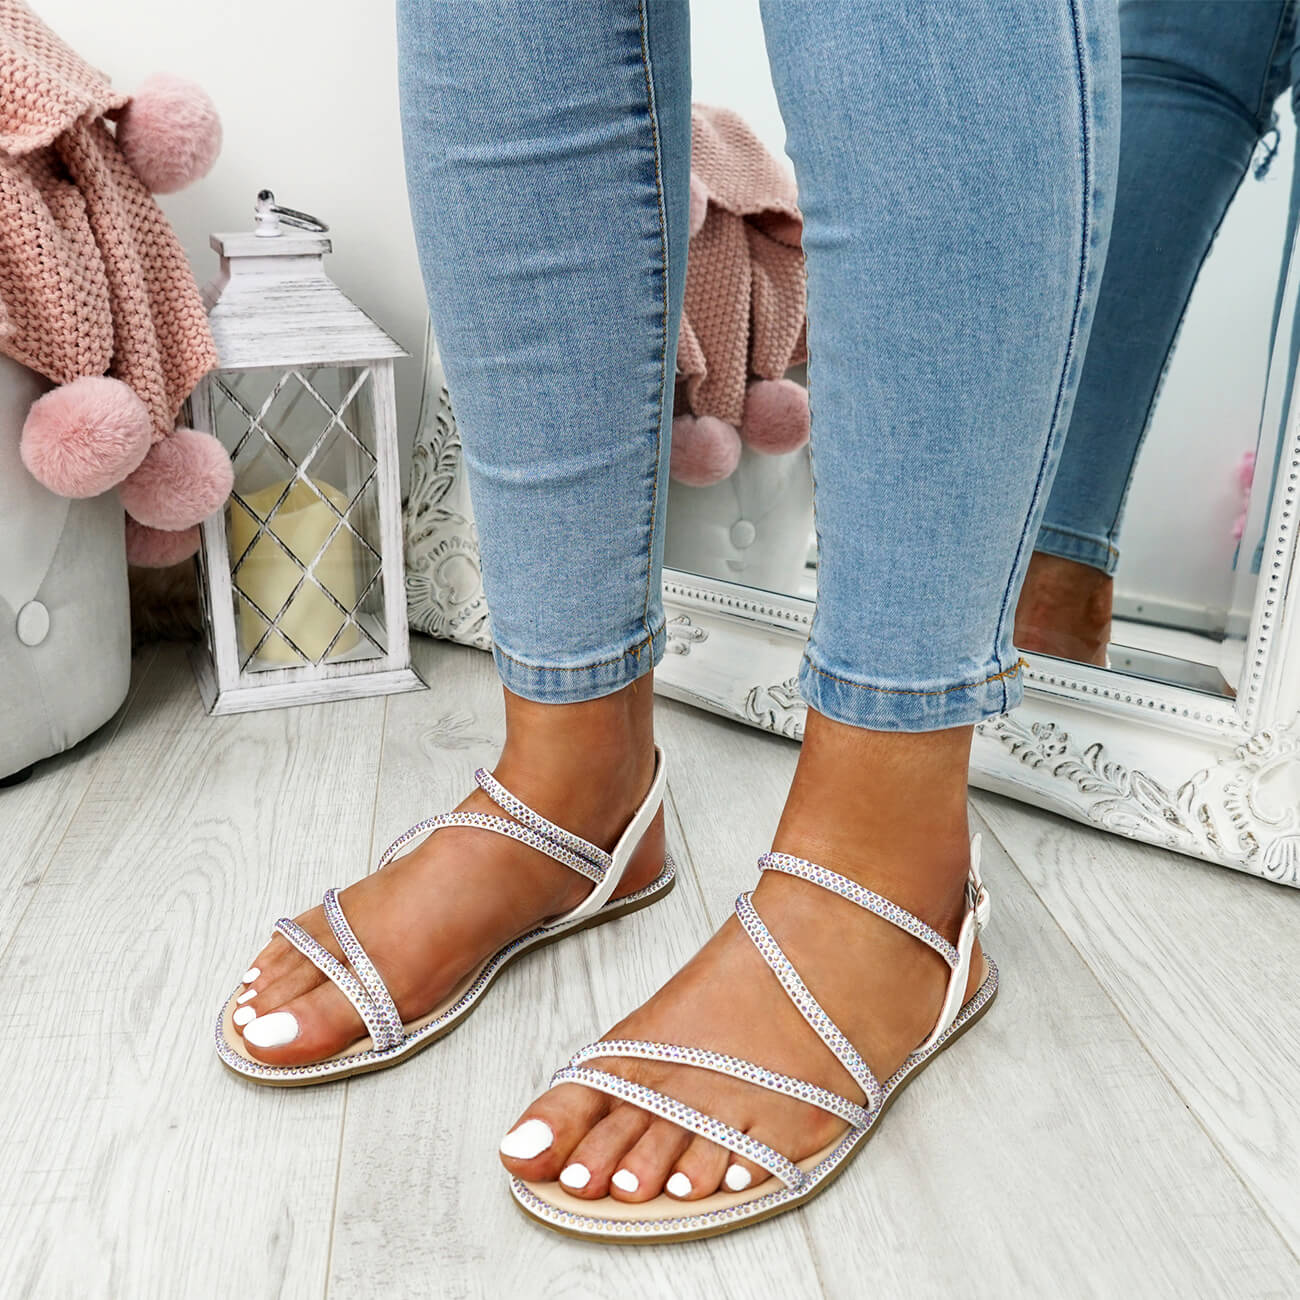 WOMENS-LADIES-STUDDED-ANKLE-STRAP-FLAT-SHOES-PARTY-CLUB-SANDALS-SHOES-SIZE-UK thumbnail 23